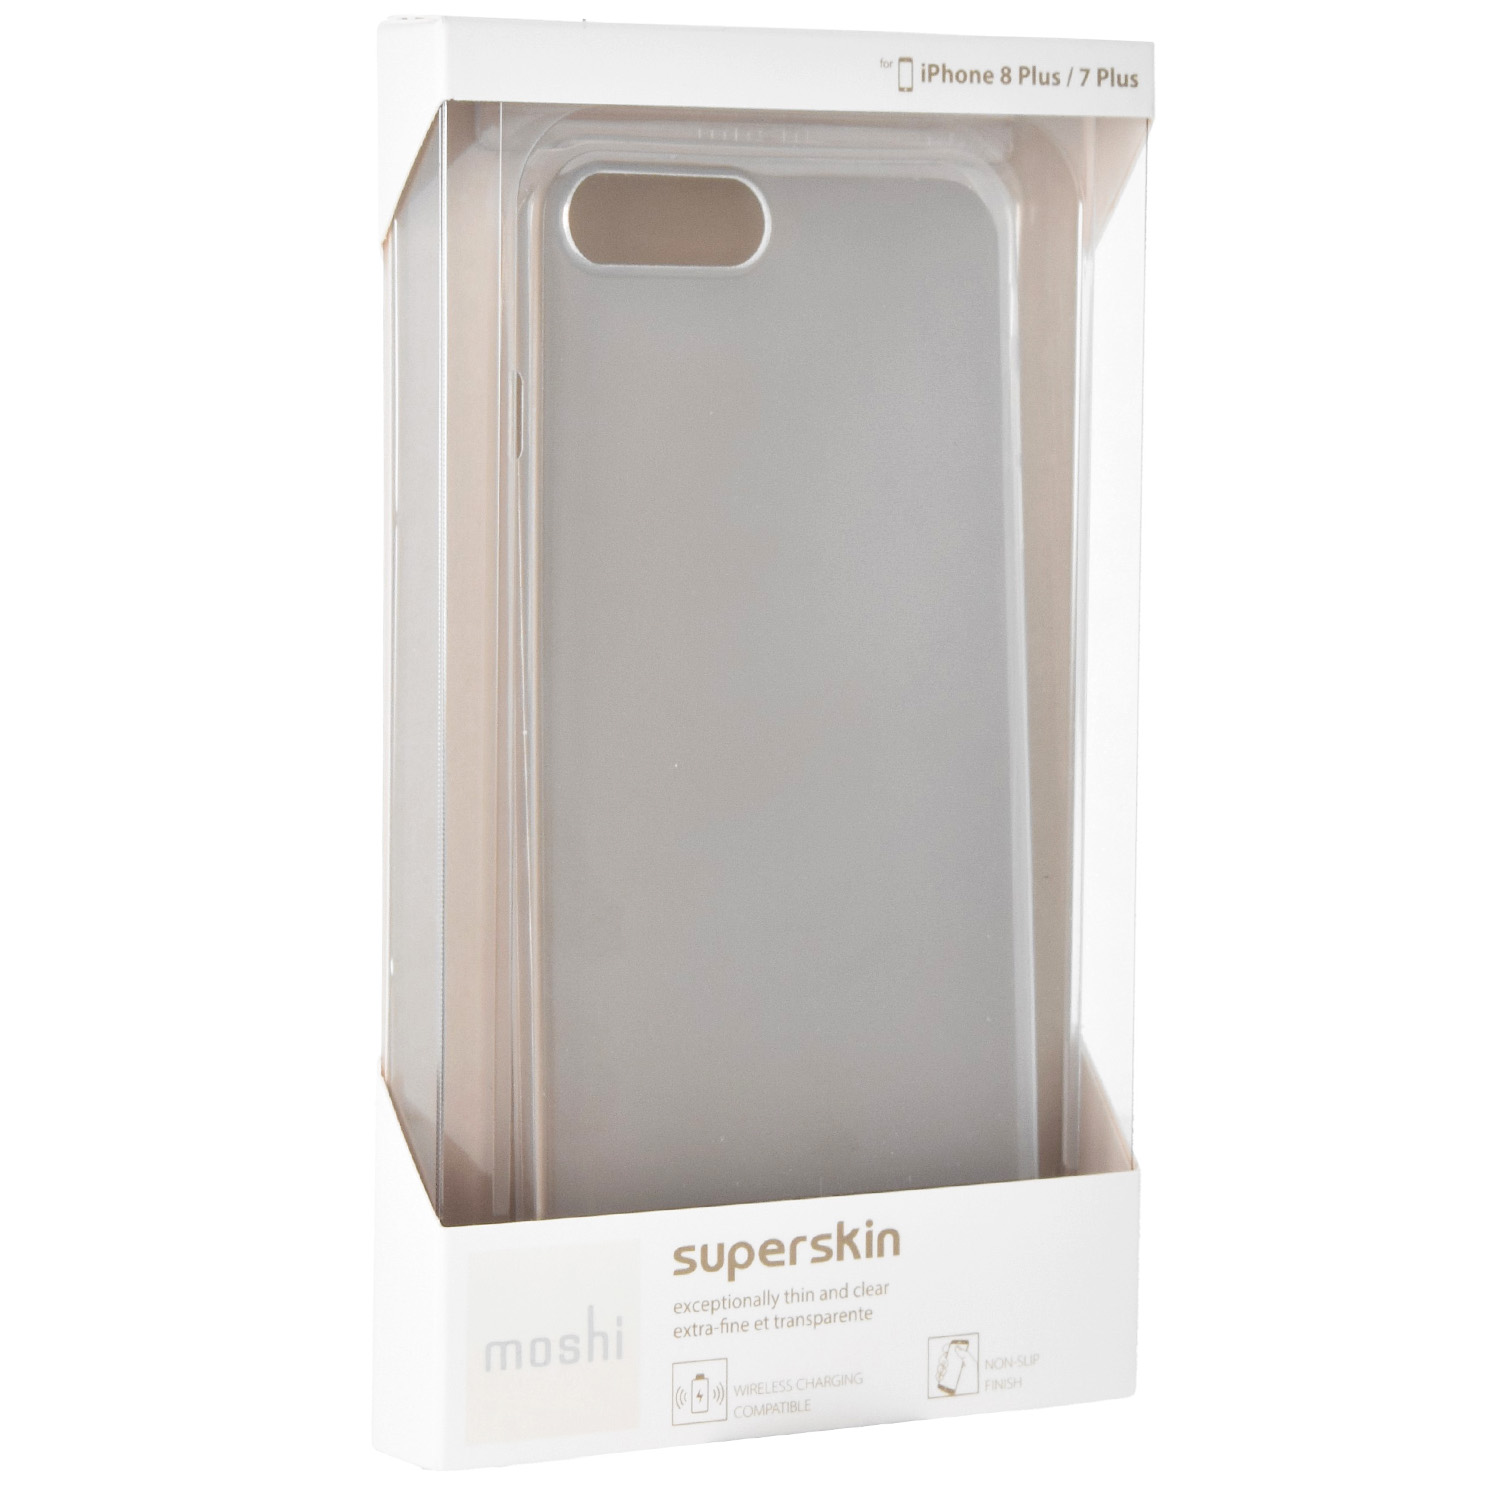 Etui Moshi SuperSkin do iPhone 8 Plus, iPhone 7 Plus